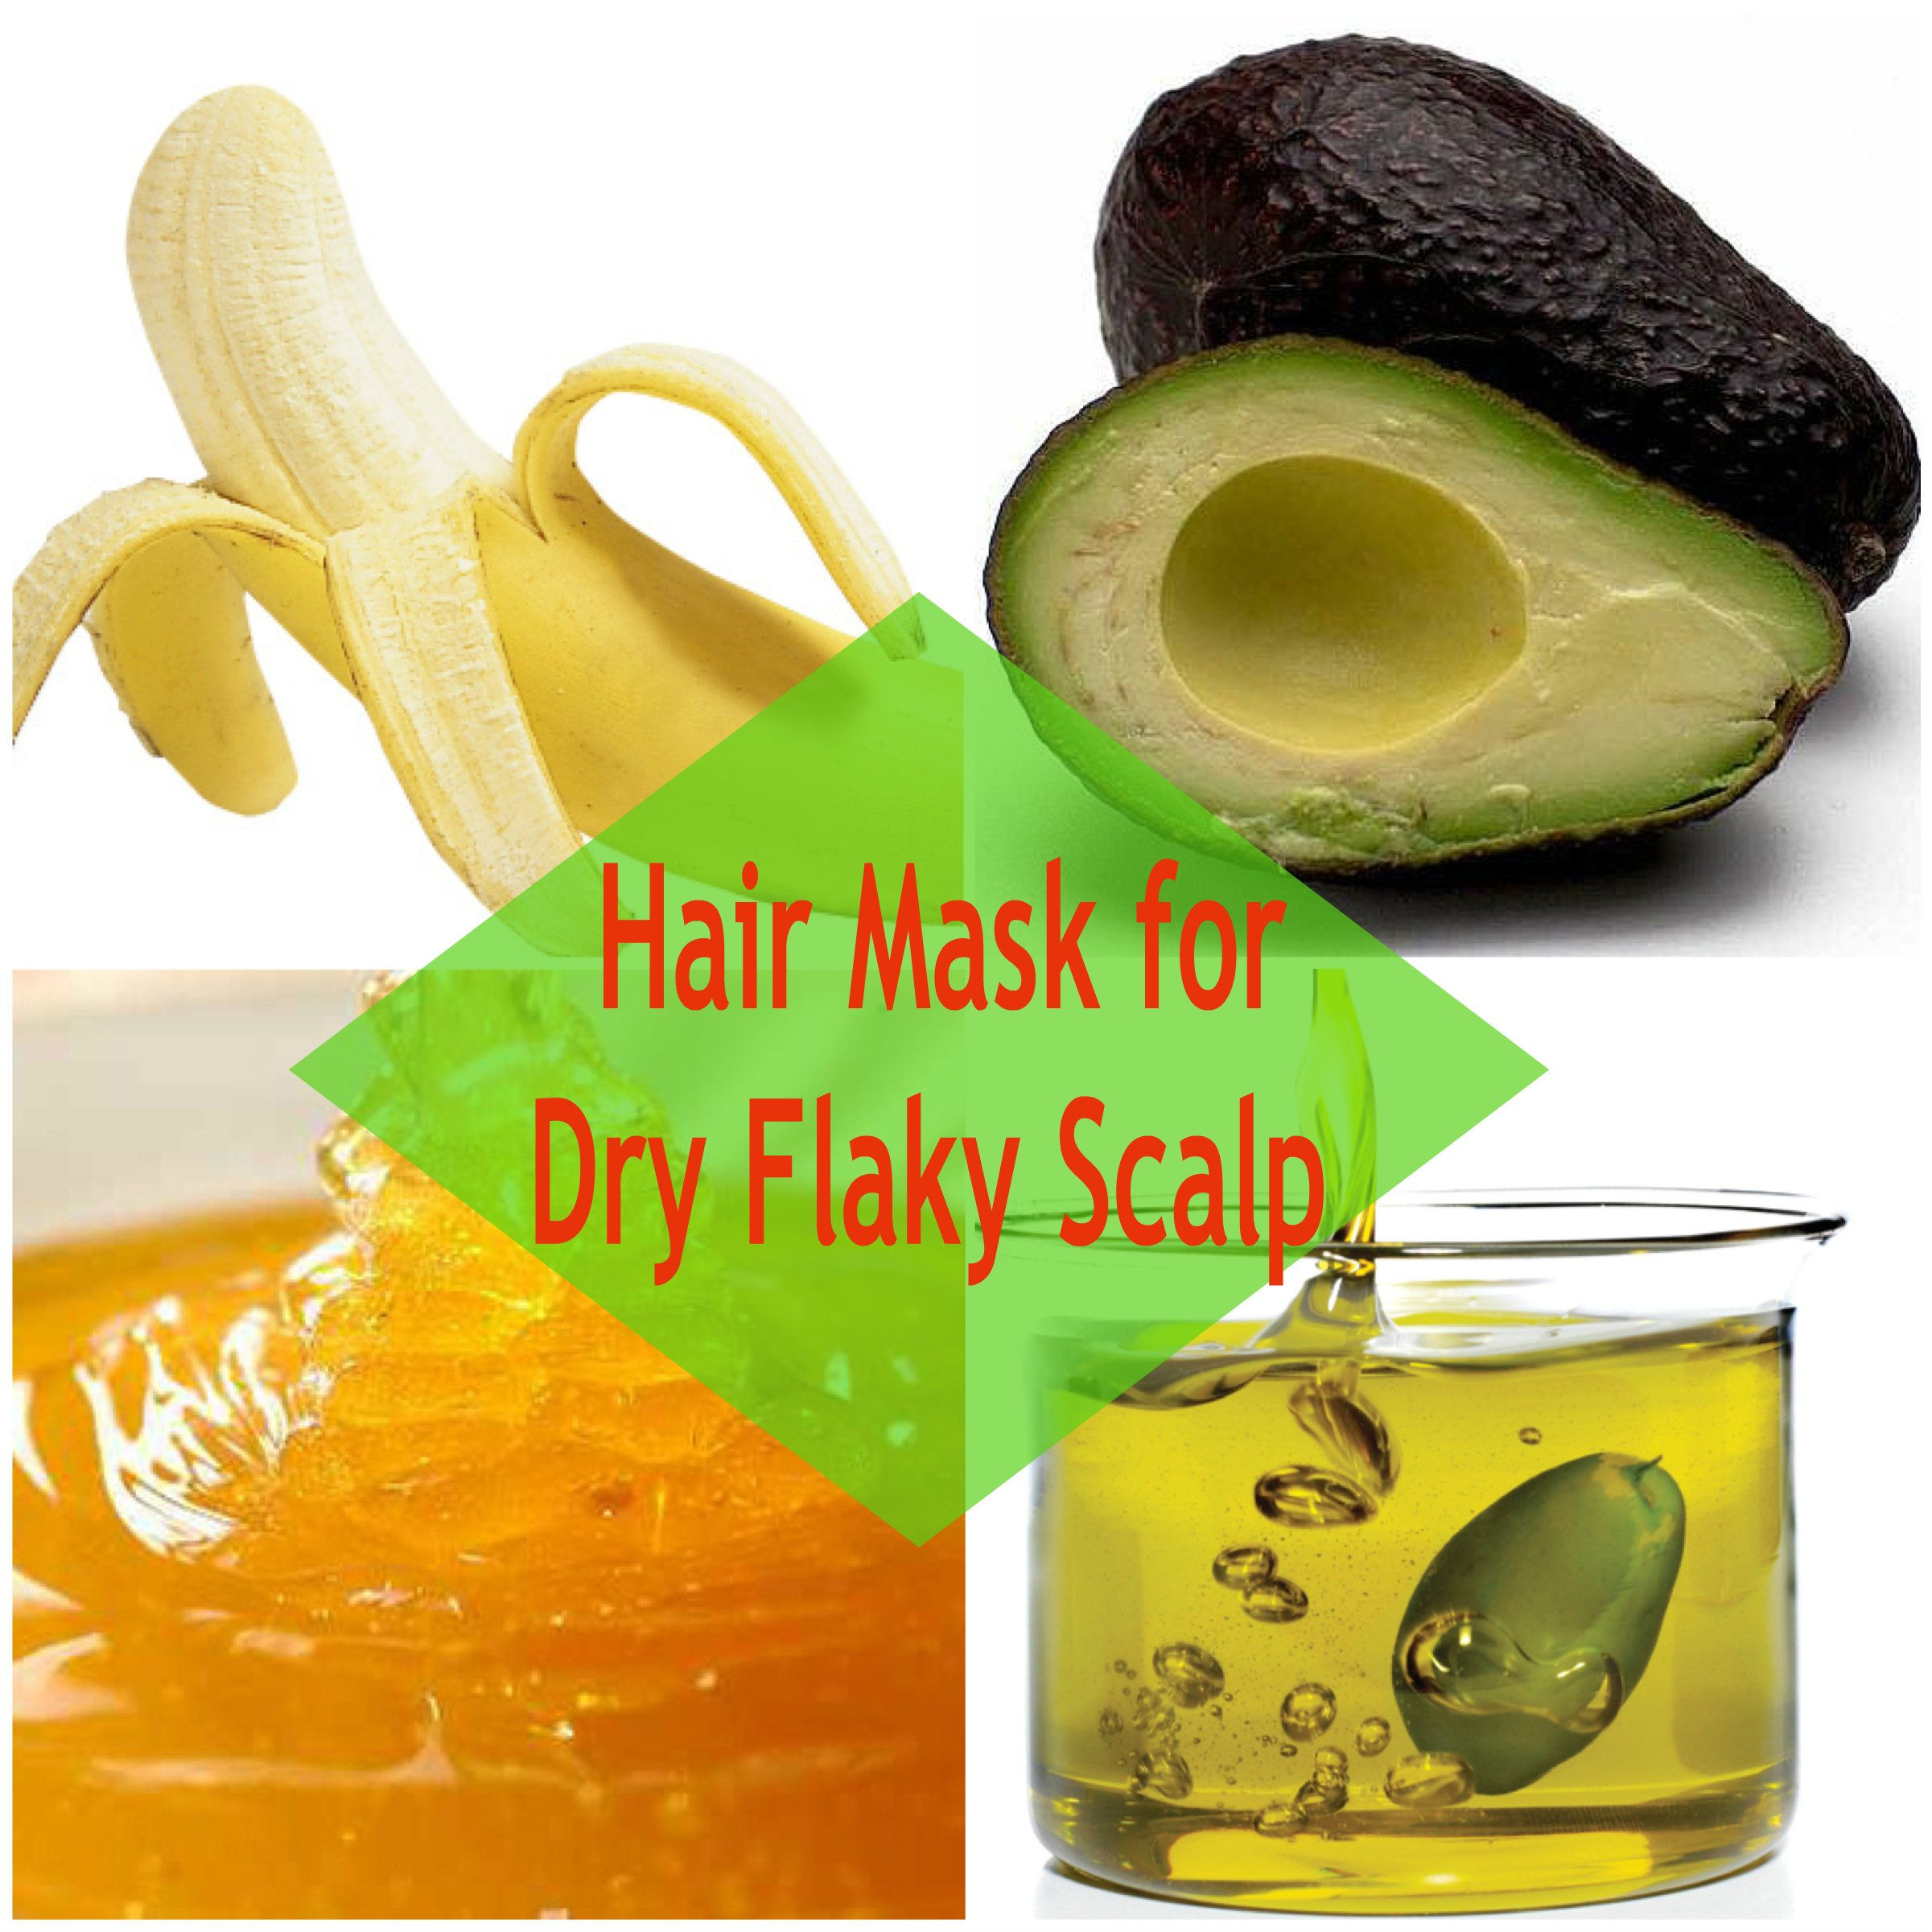 3 DIY Hair Mask for Dry Flaky Scalp for Neglected Hair